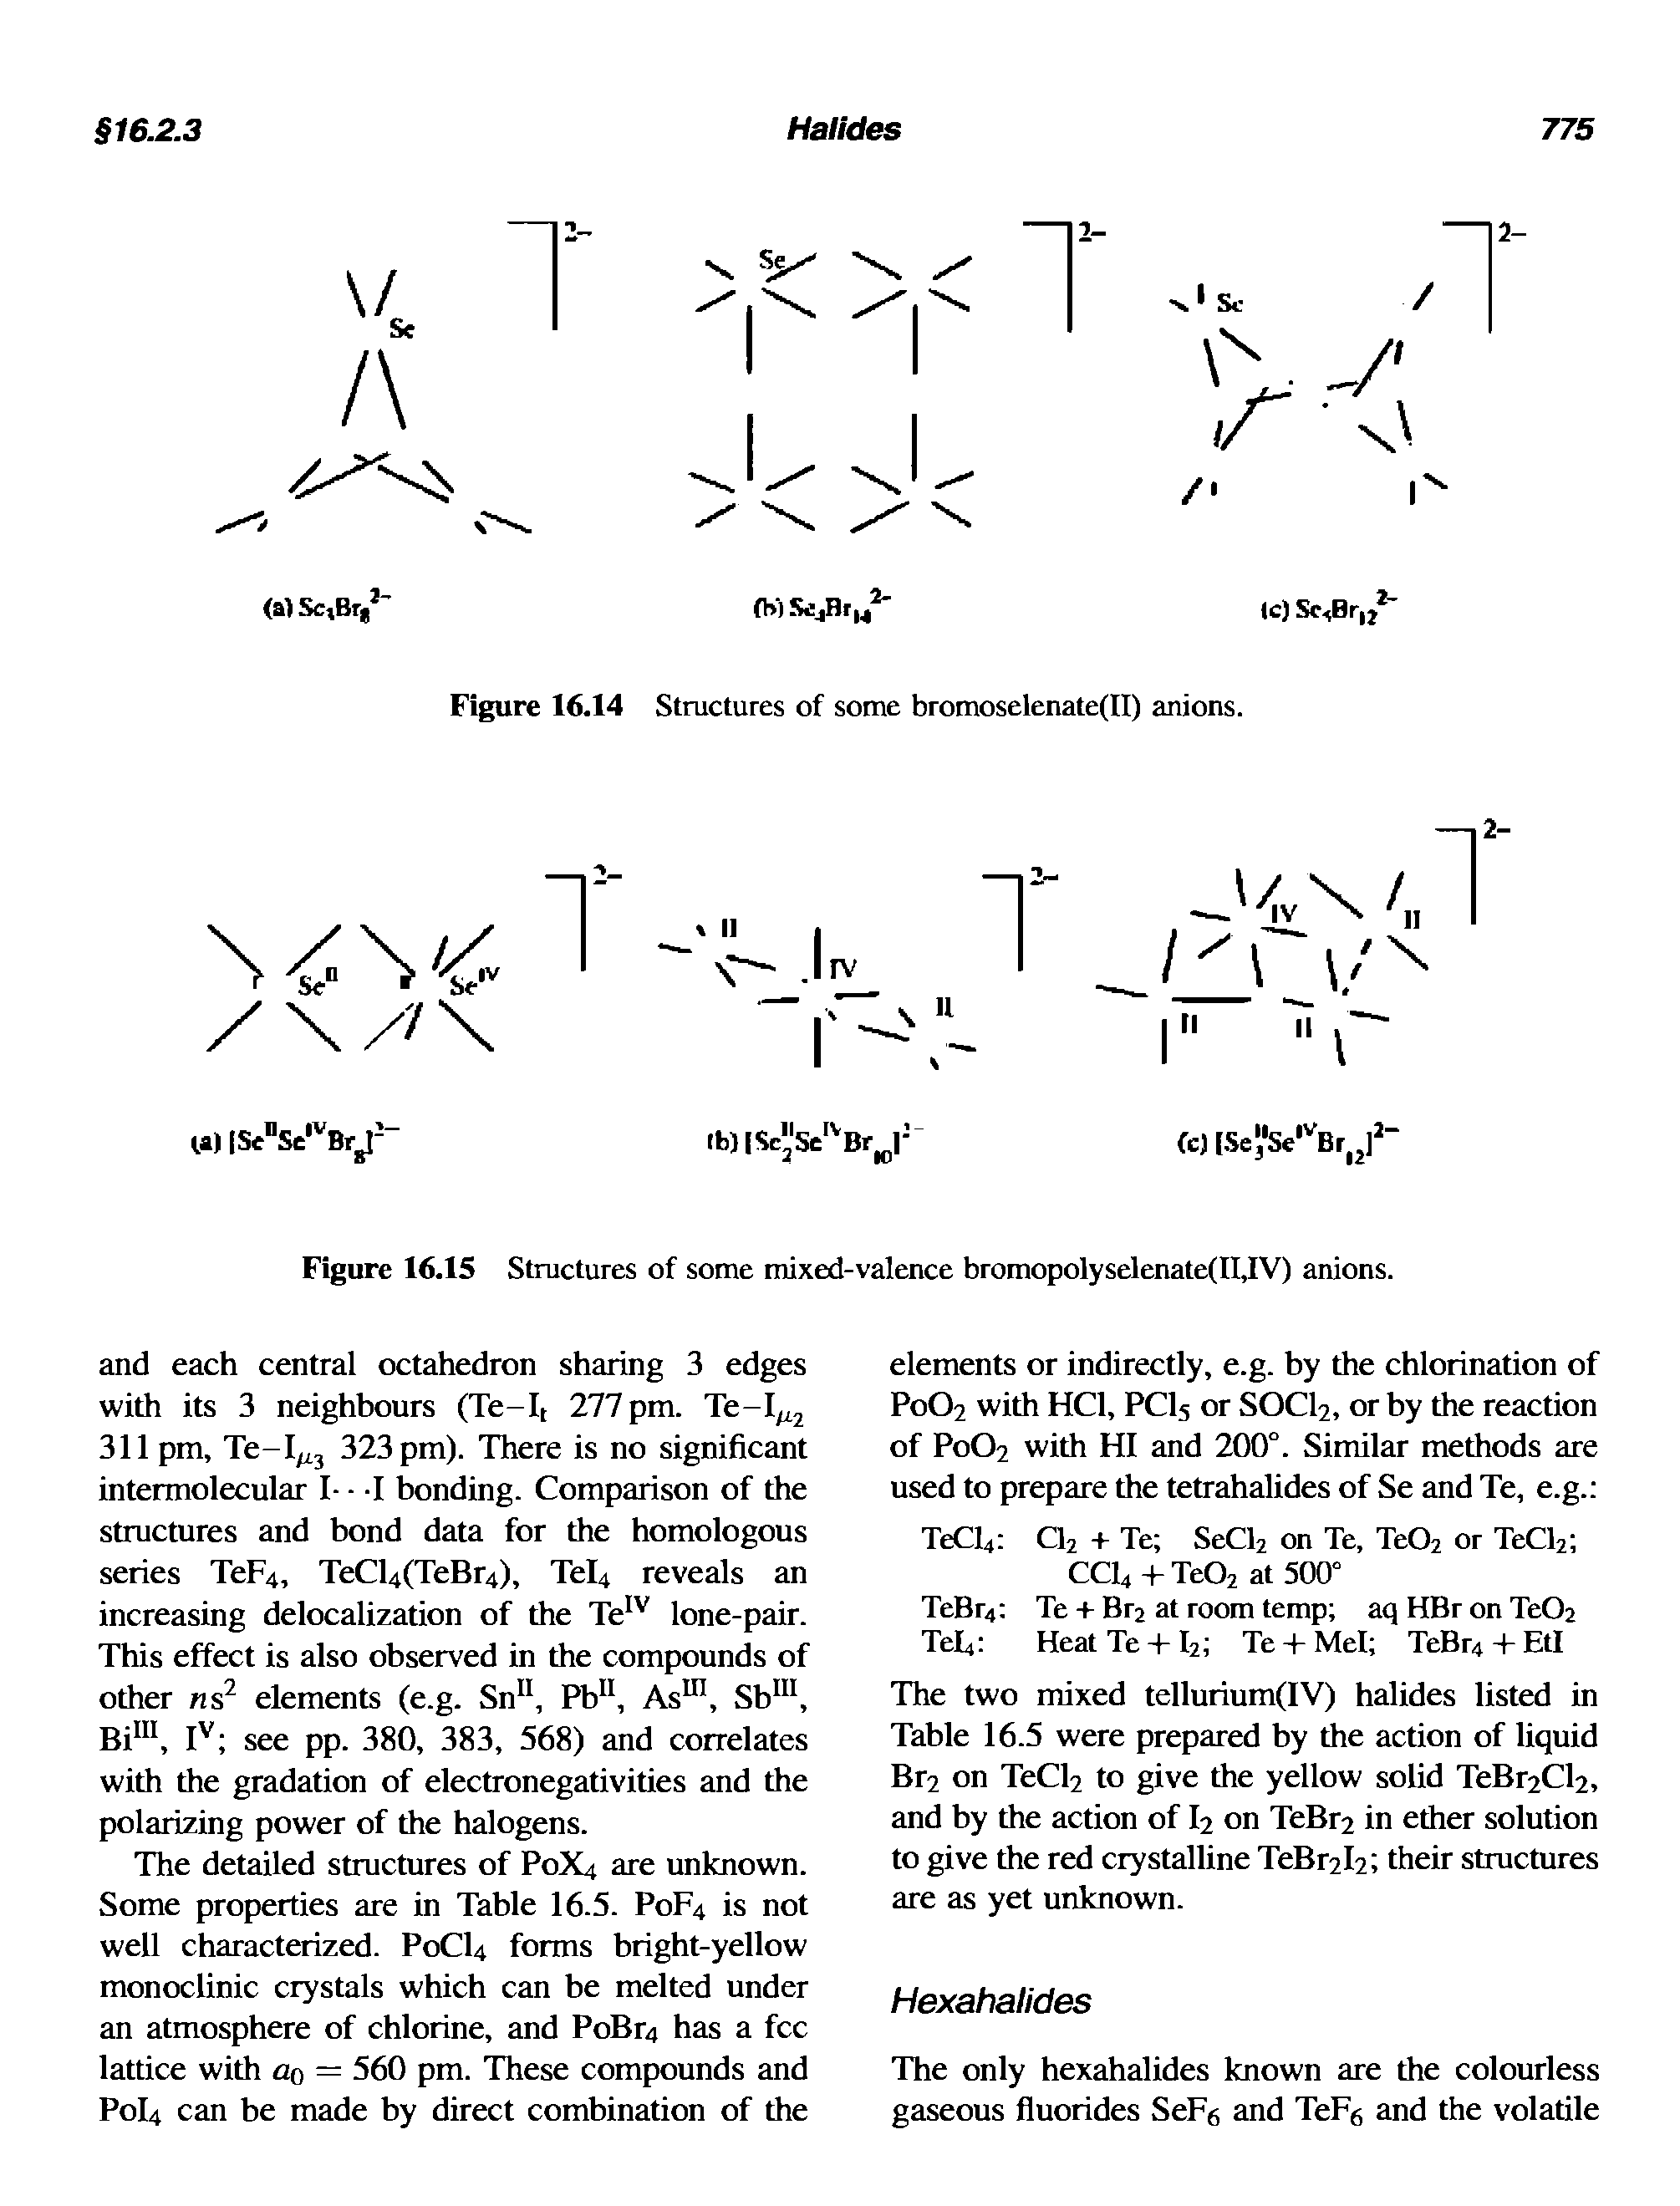 Figure 16.15 Structures of some mixed-valence bromopolyselenate(II,IV) anions.